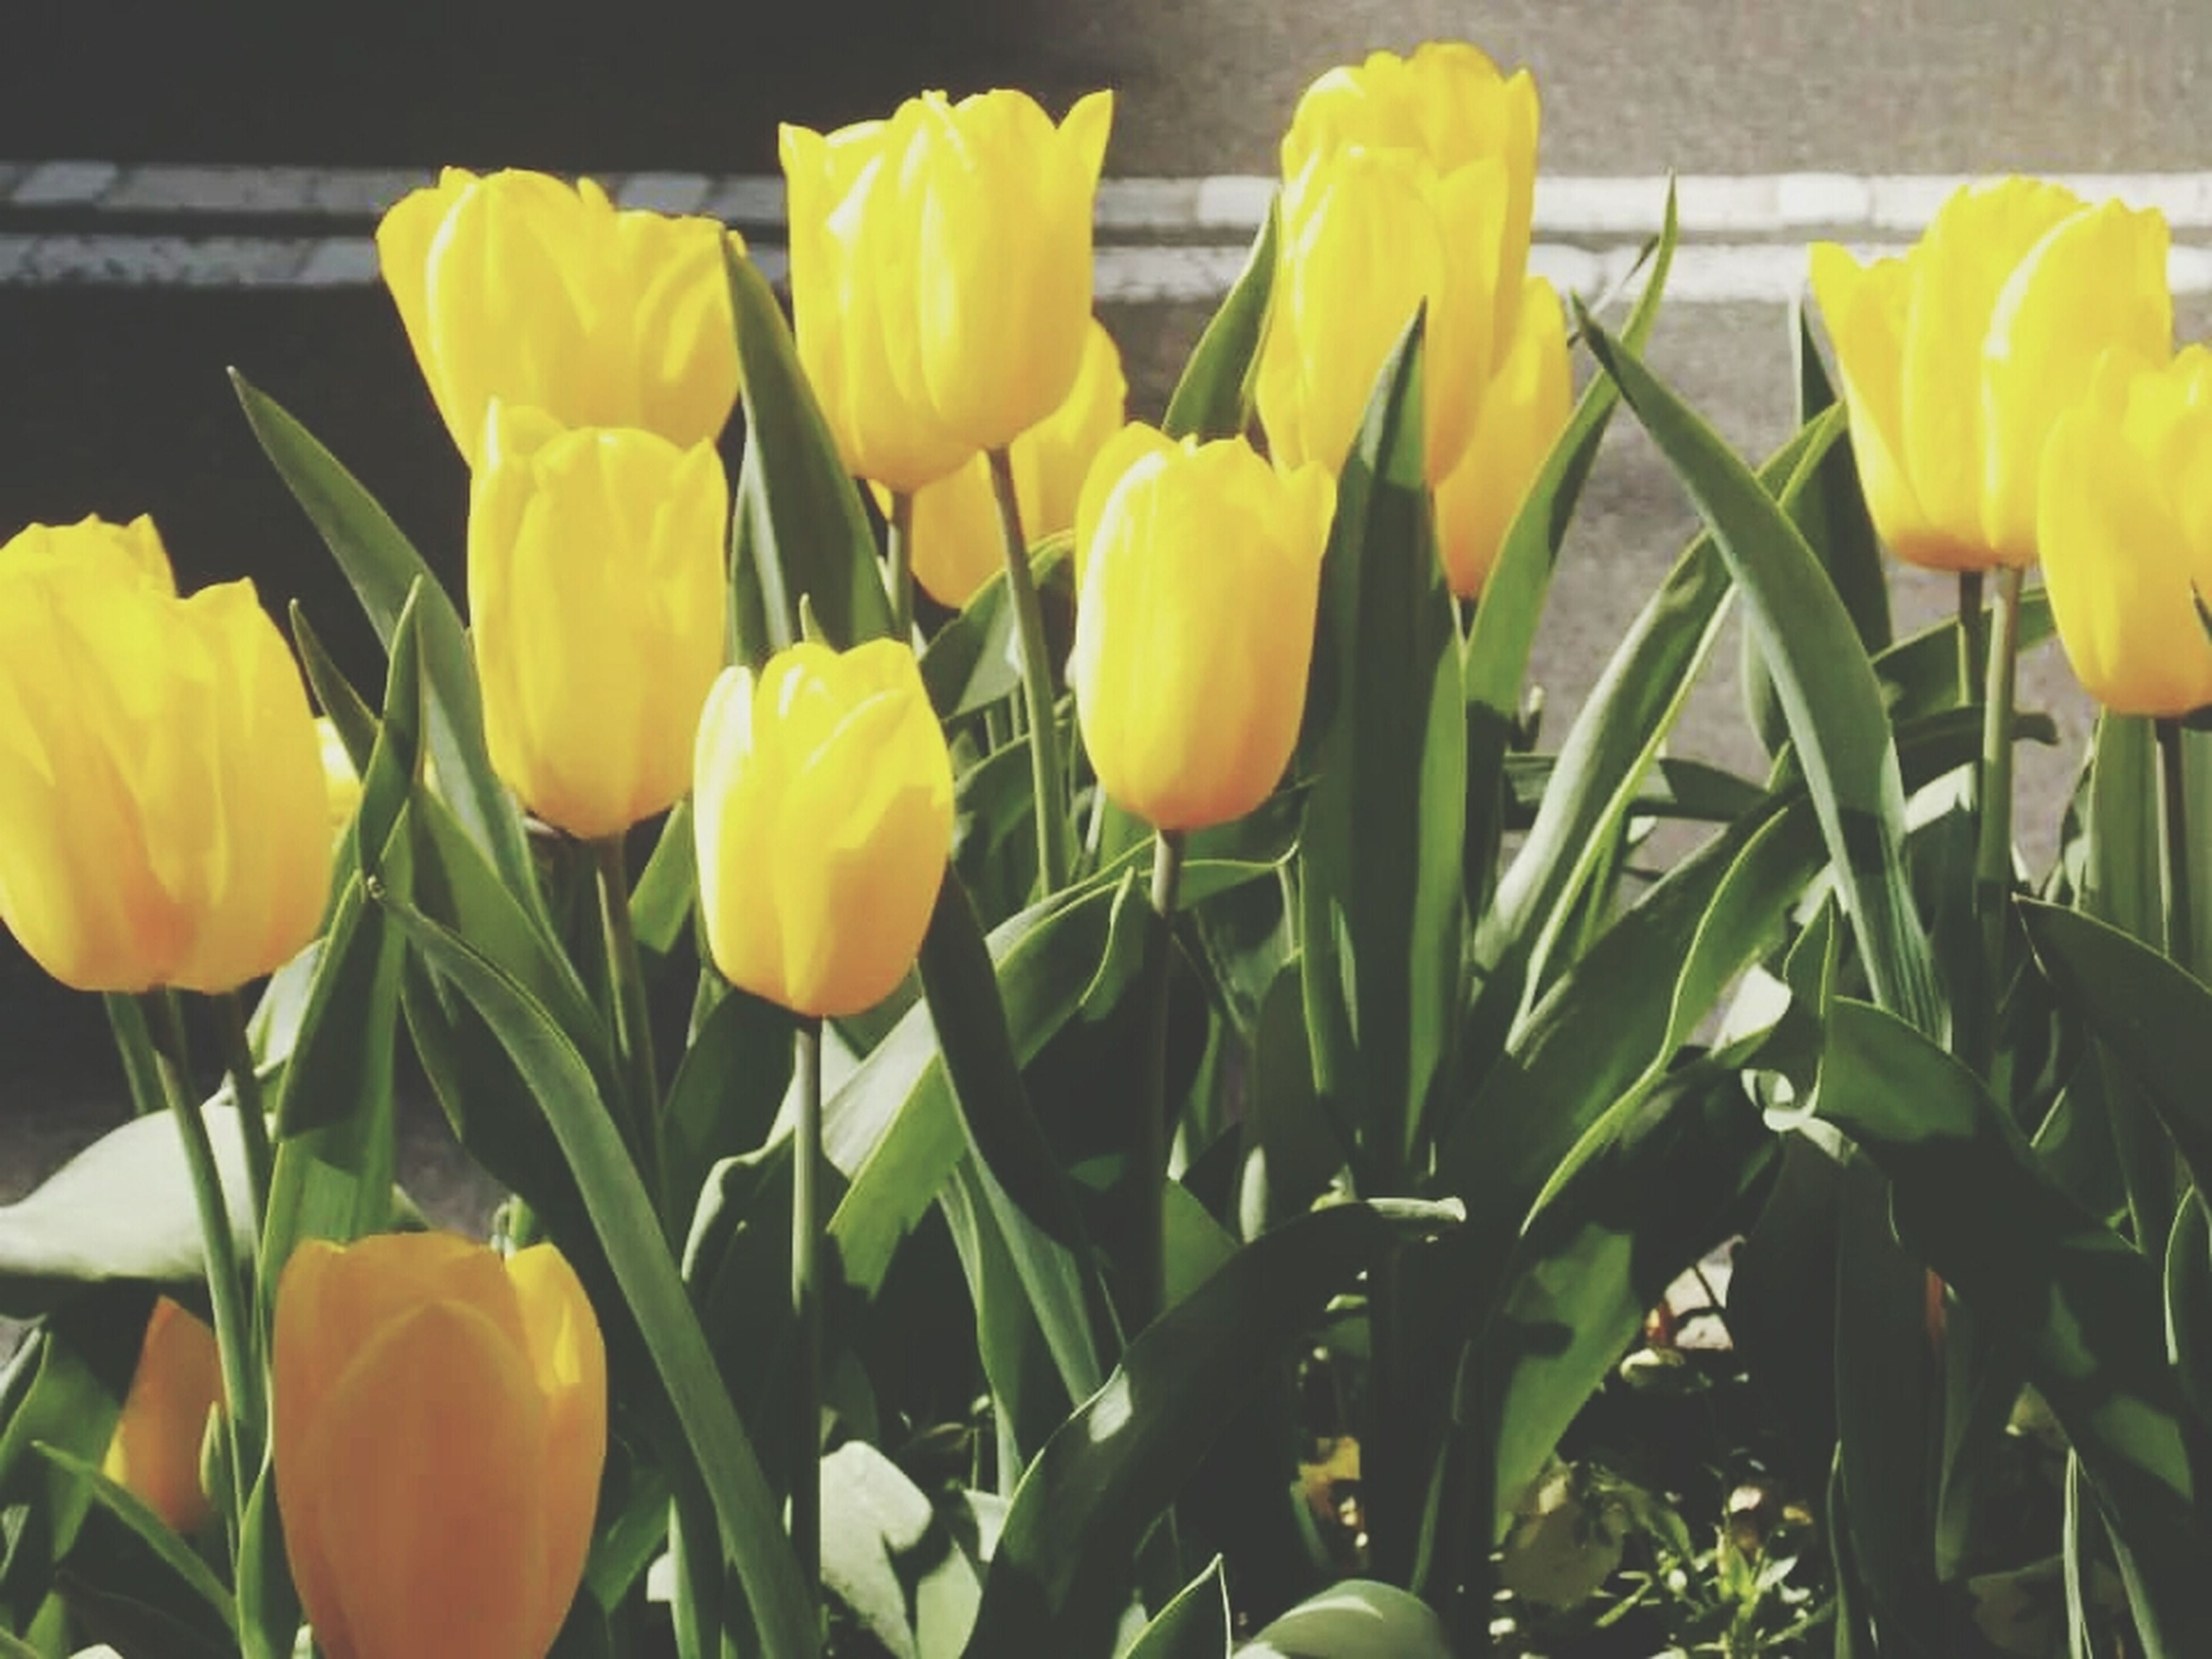 flower, freshness, tulip, yellow, fragility, growth, petal, plant, flower head, beauty in nature, nature, close-up, abundance, blooming, field, leaf, green color, day, outdoors, stem